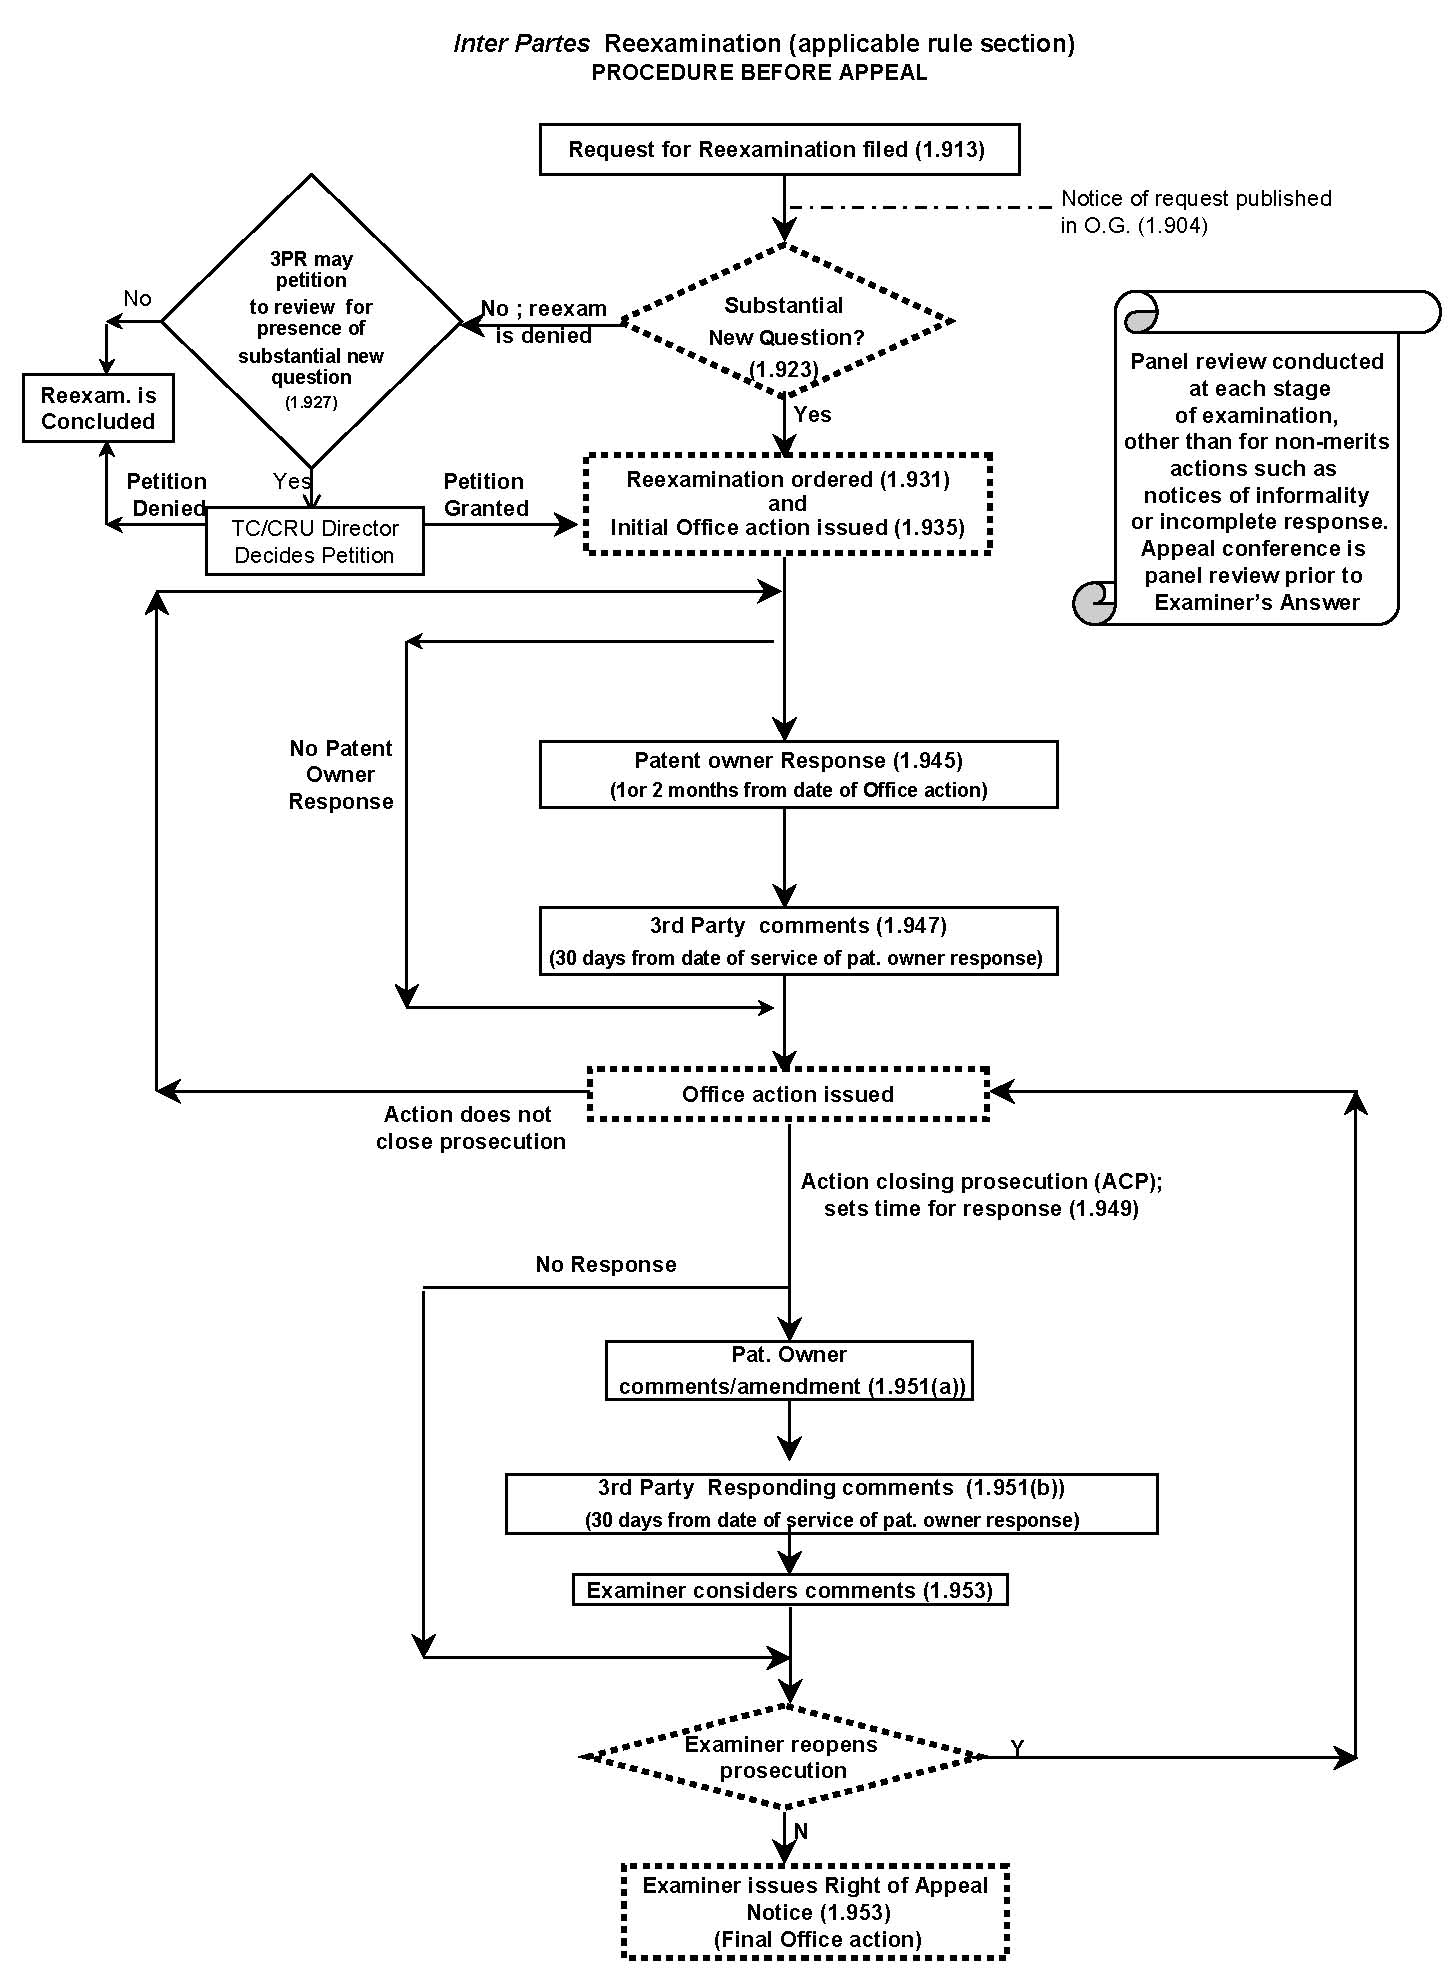 Mpep 260101 flowcharts jan 2018 bitlaw inter partes reexamination applicable rule section procedure before appeal nvjuhfo Image collections